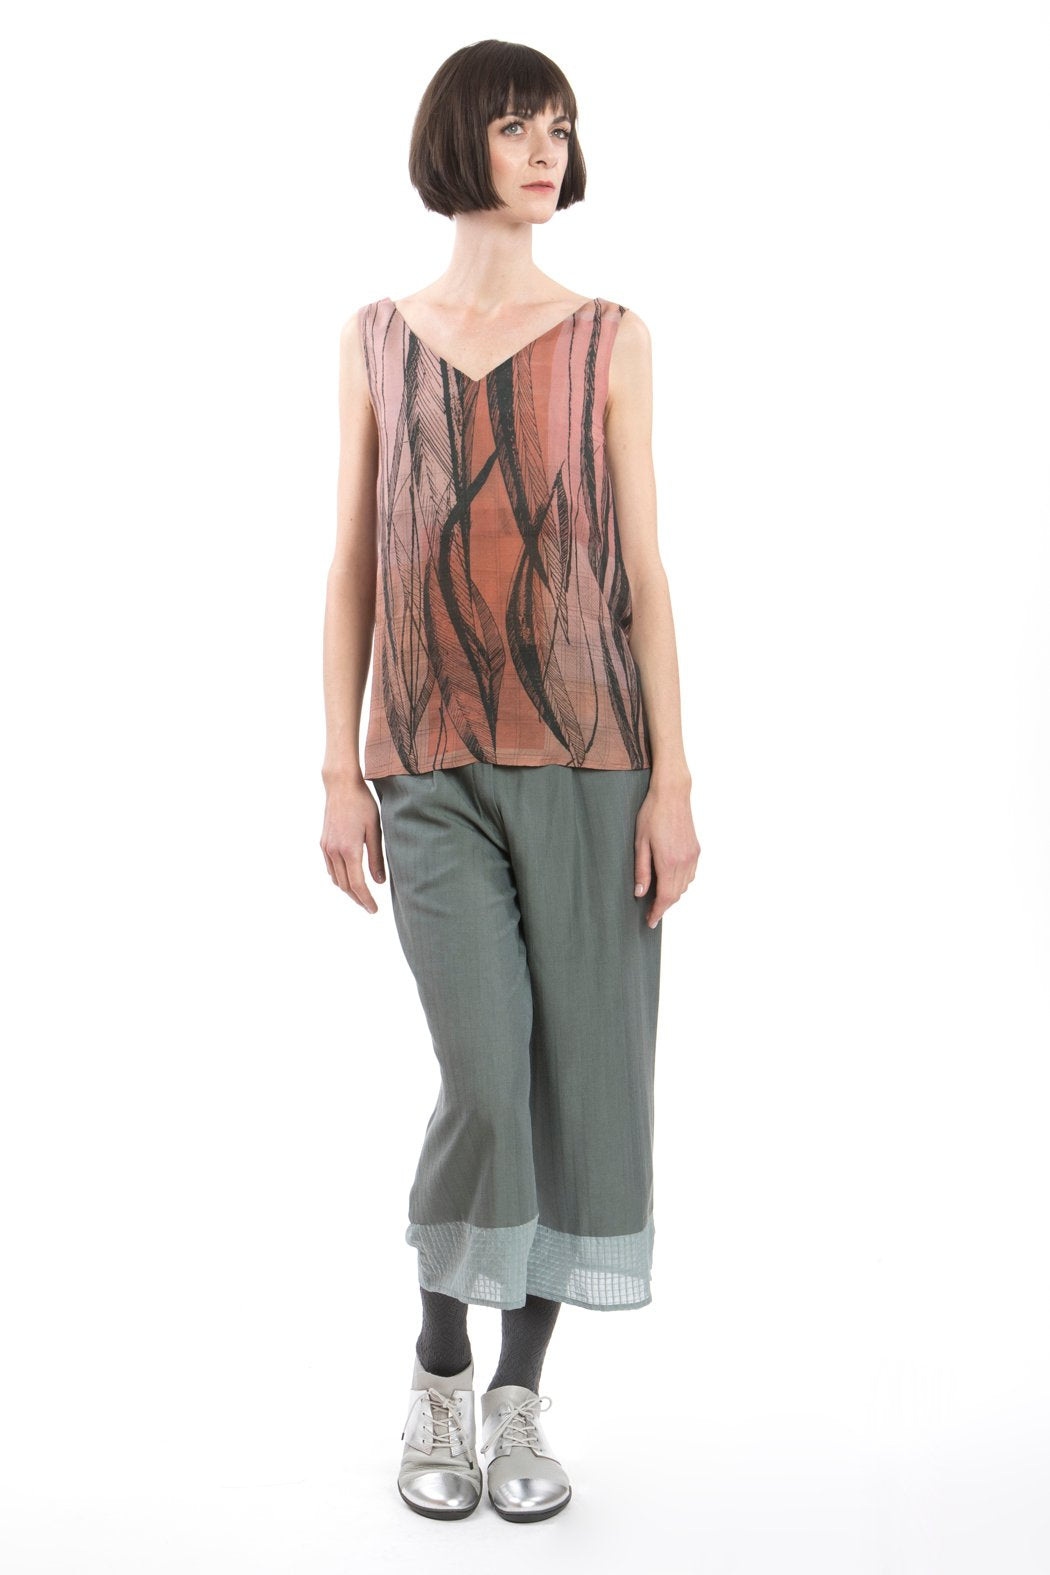 Top V-neck Top Feather Print